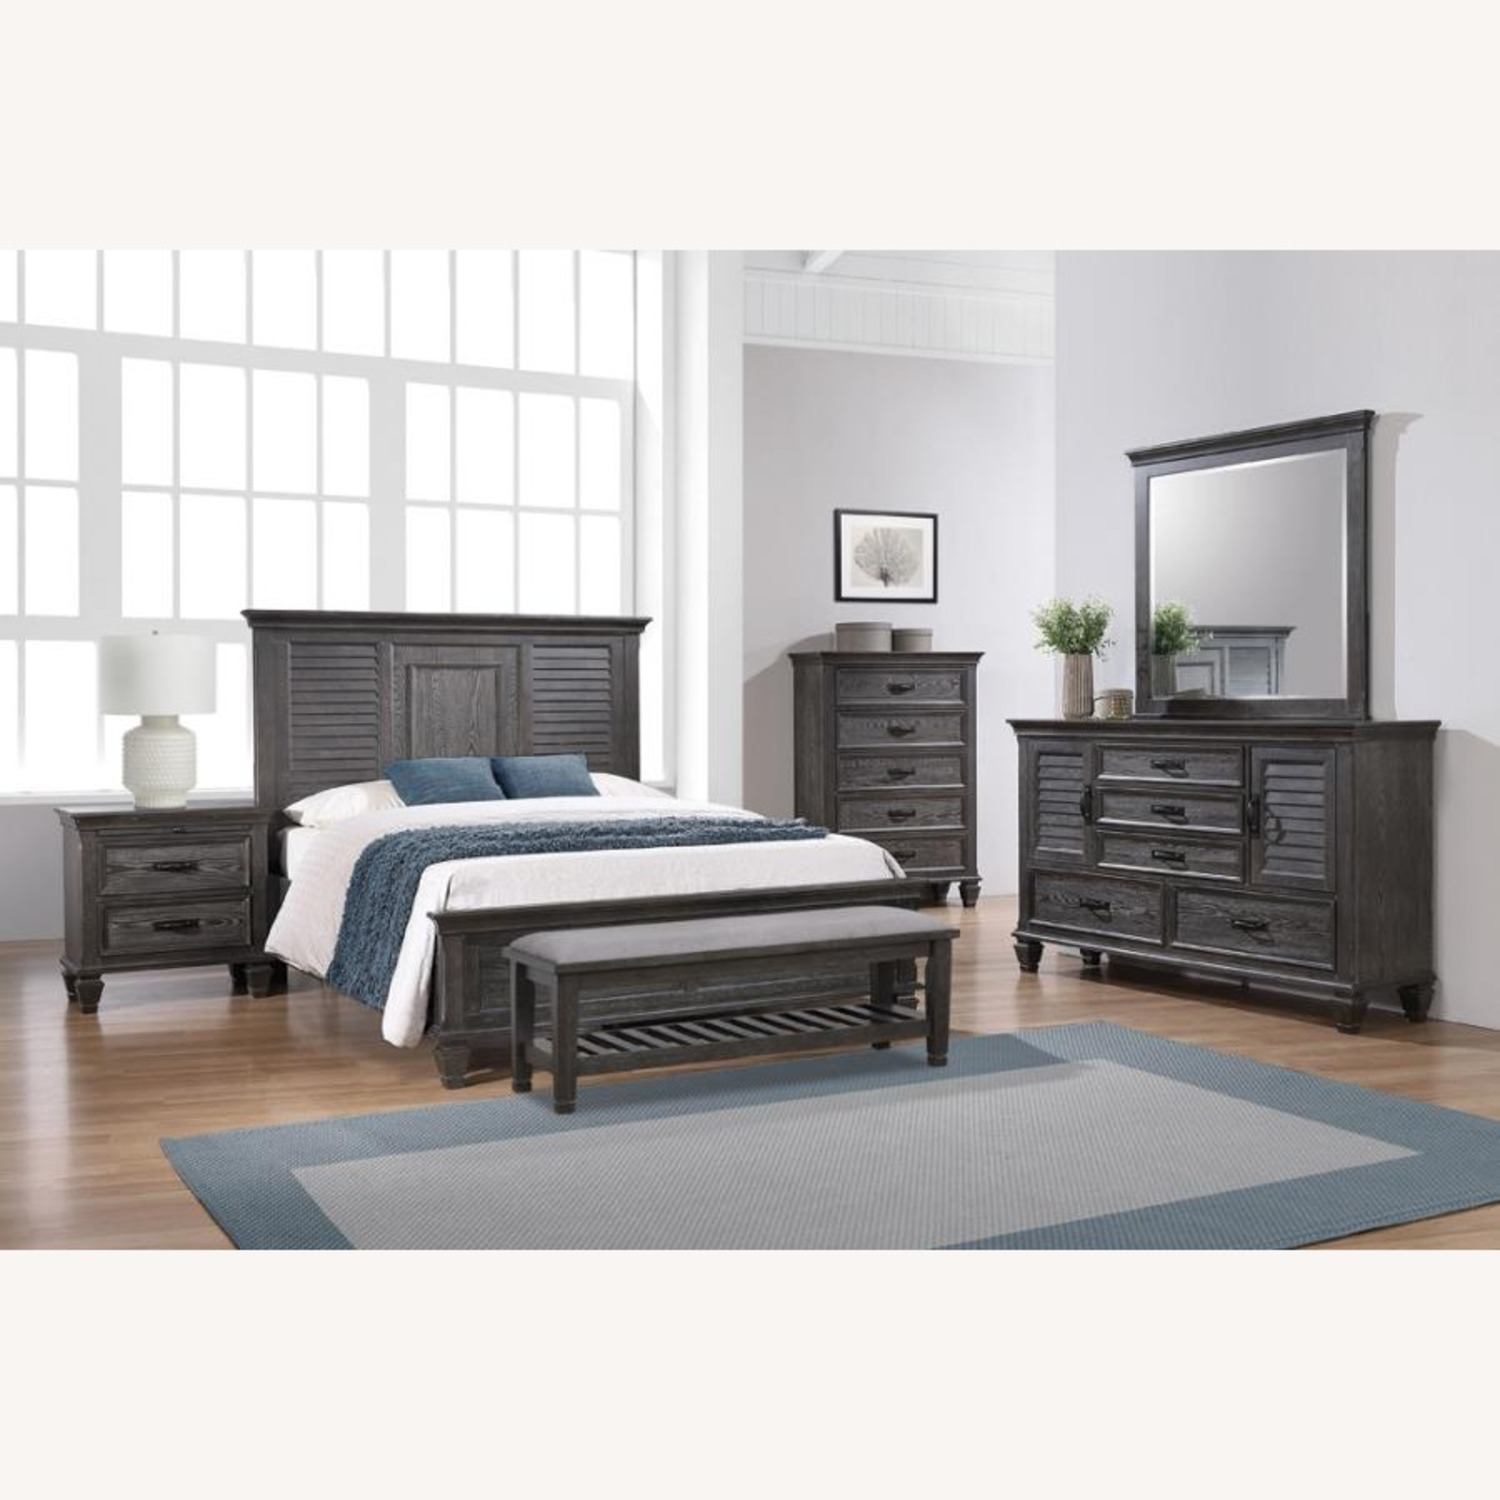 King Bed In Weathered Sage Finish - image-2